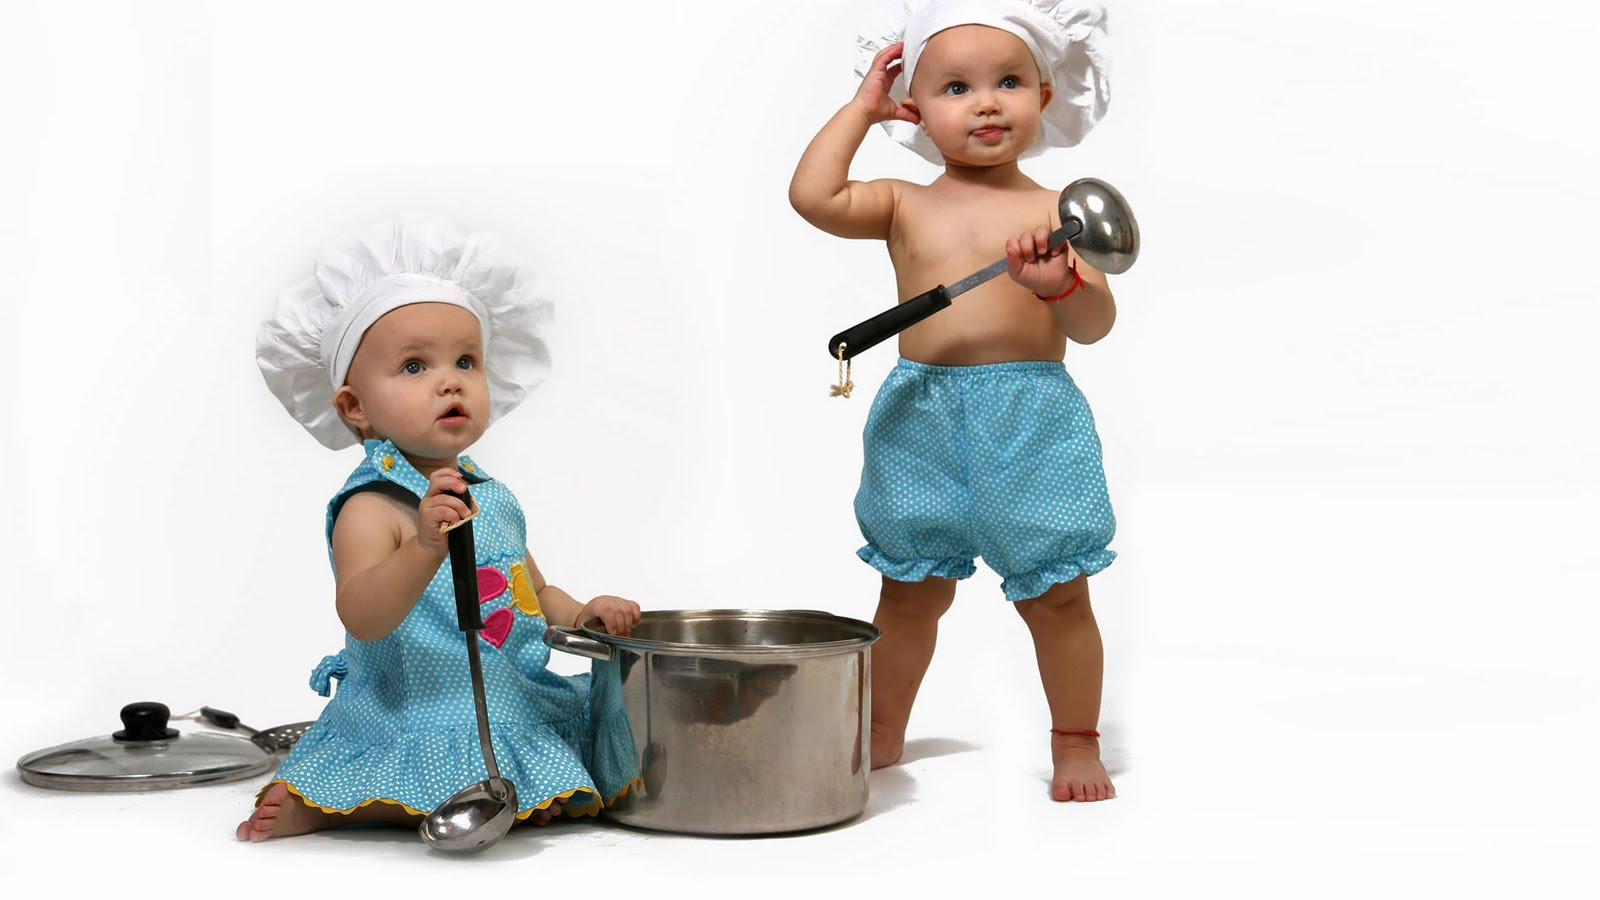 Baby wallpapers baby chef